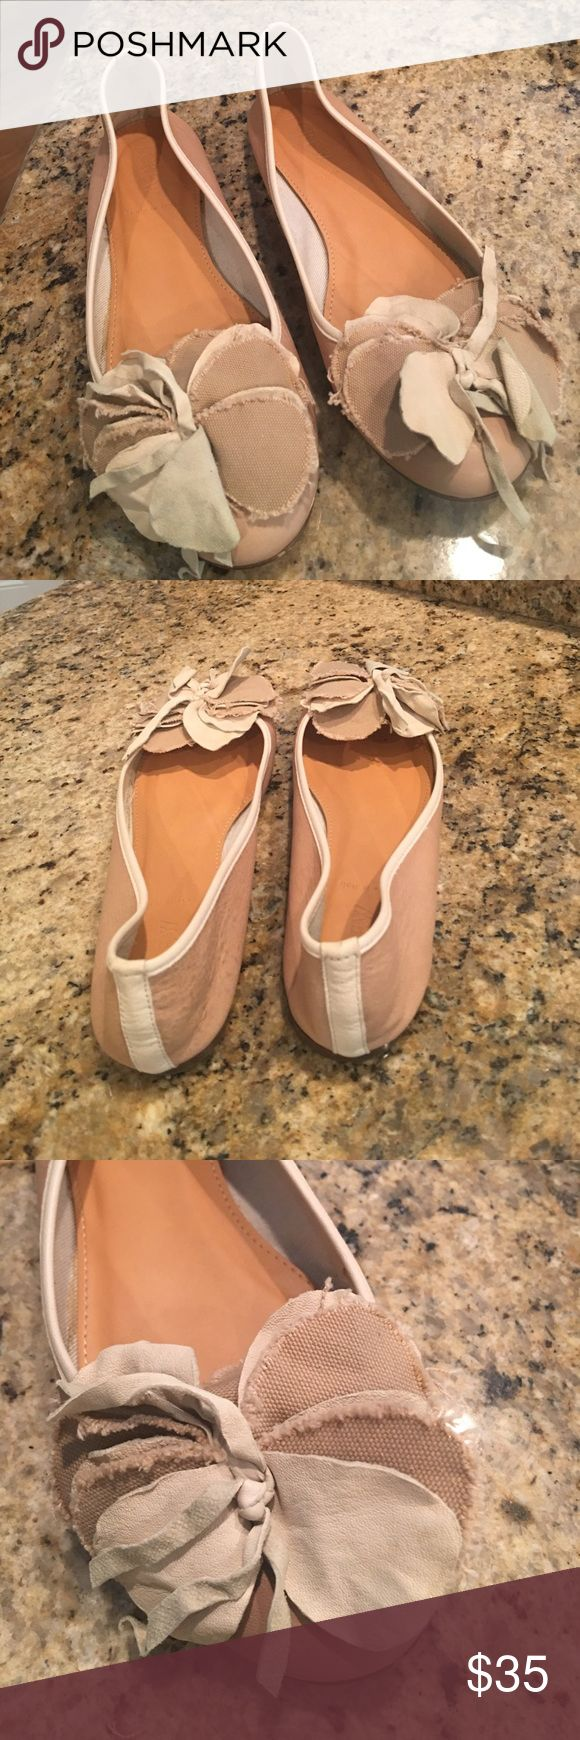 J Crew ballet flats Beige & cream ballet flats with leather & fabric flower petal. j crew Shoes Flats & Loafers